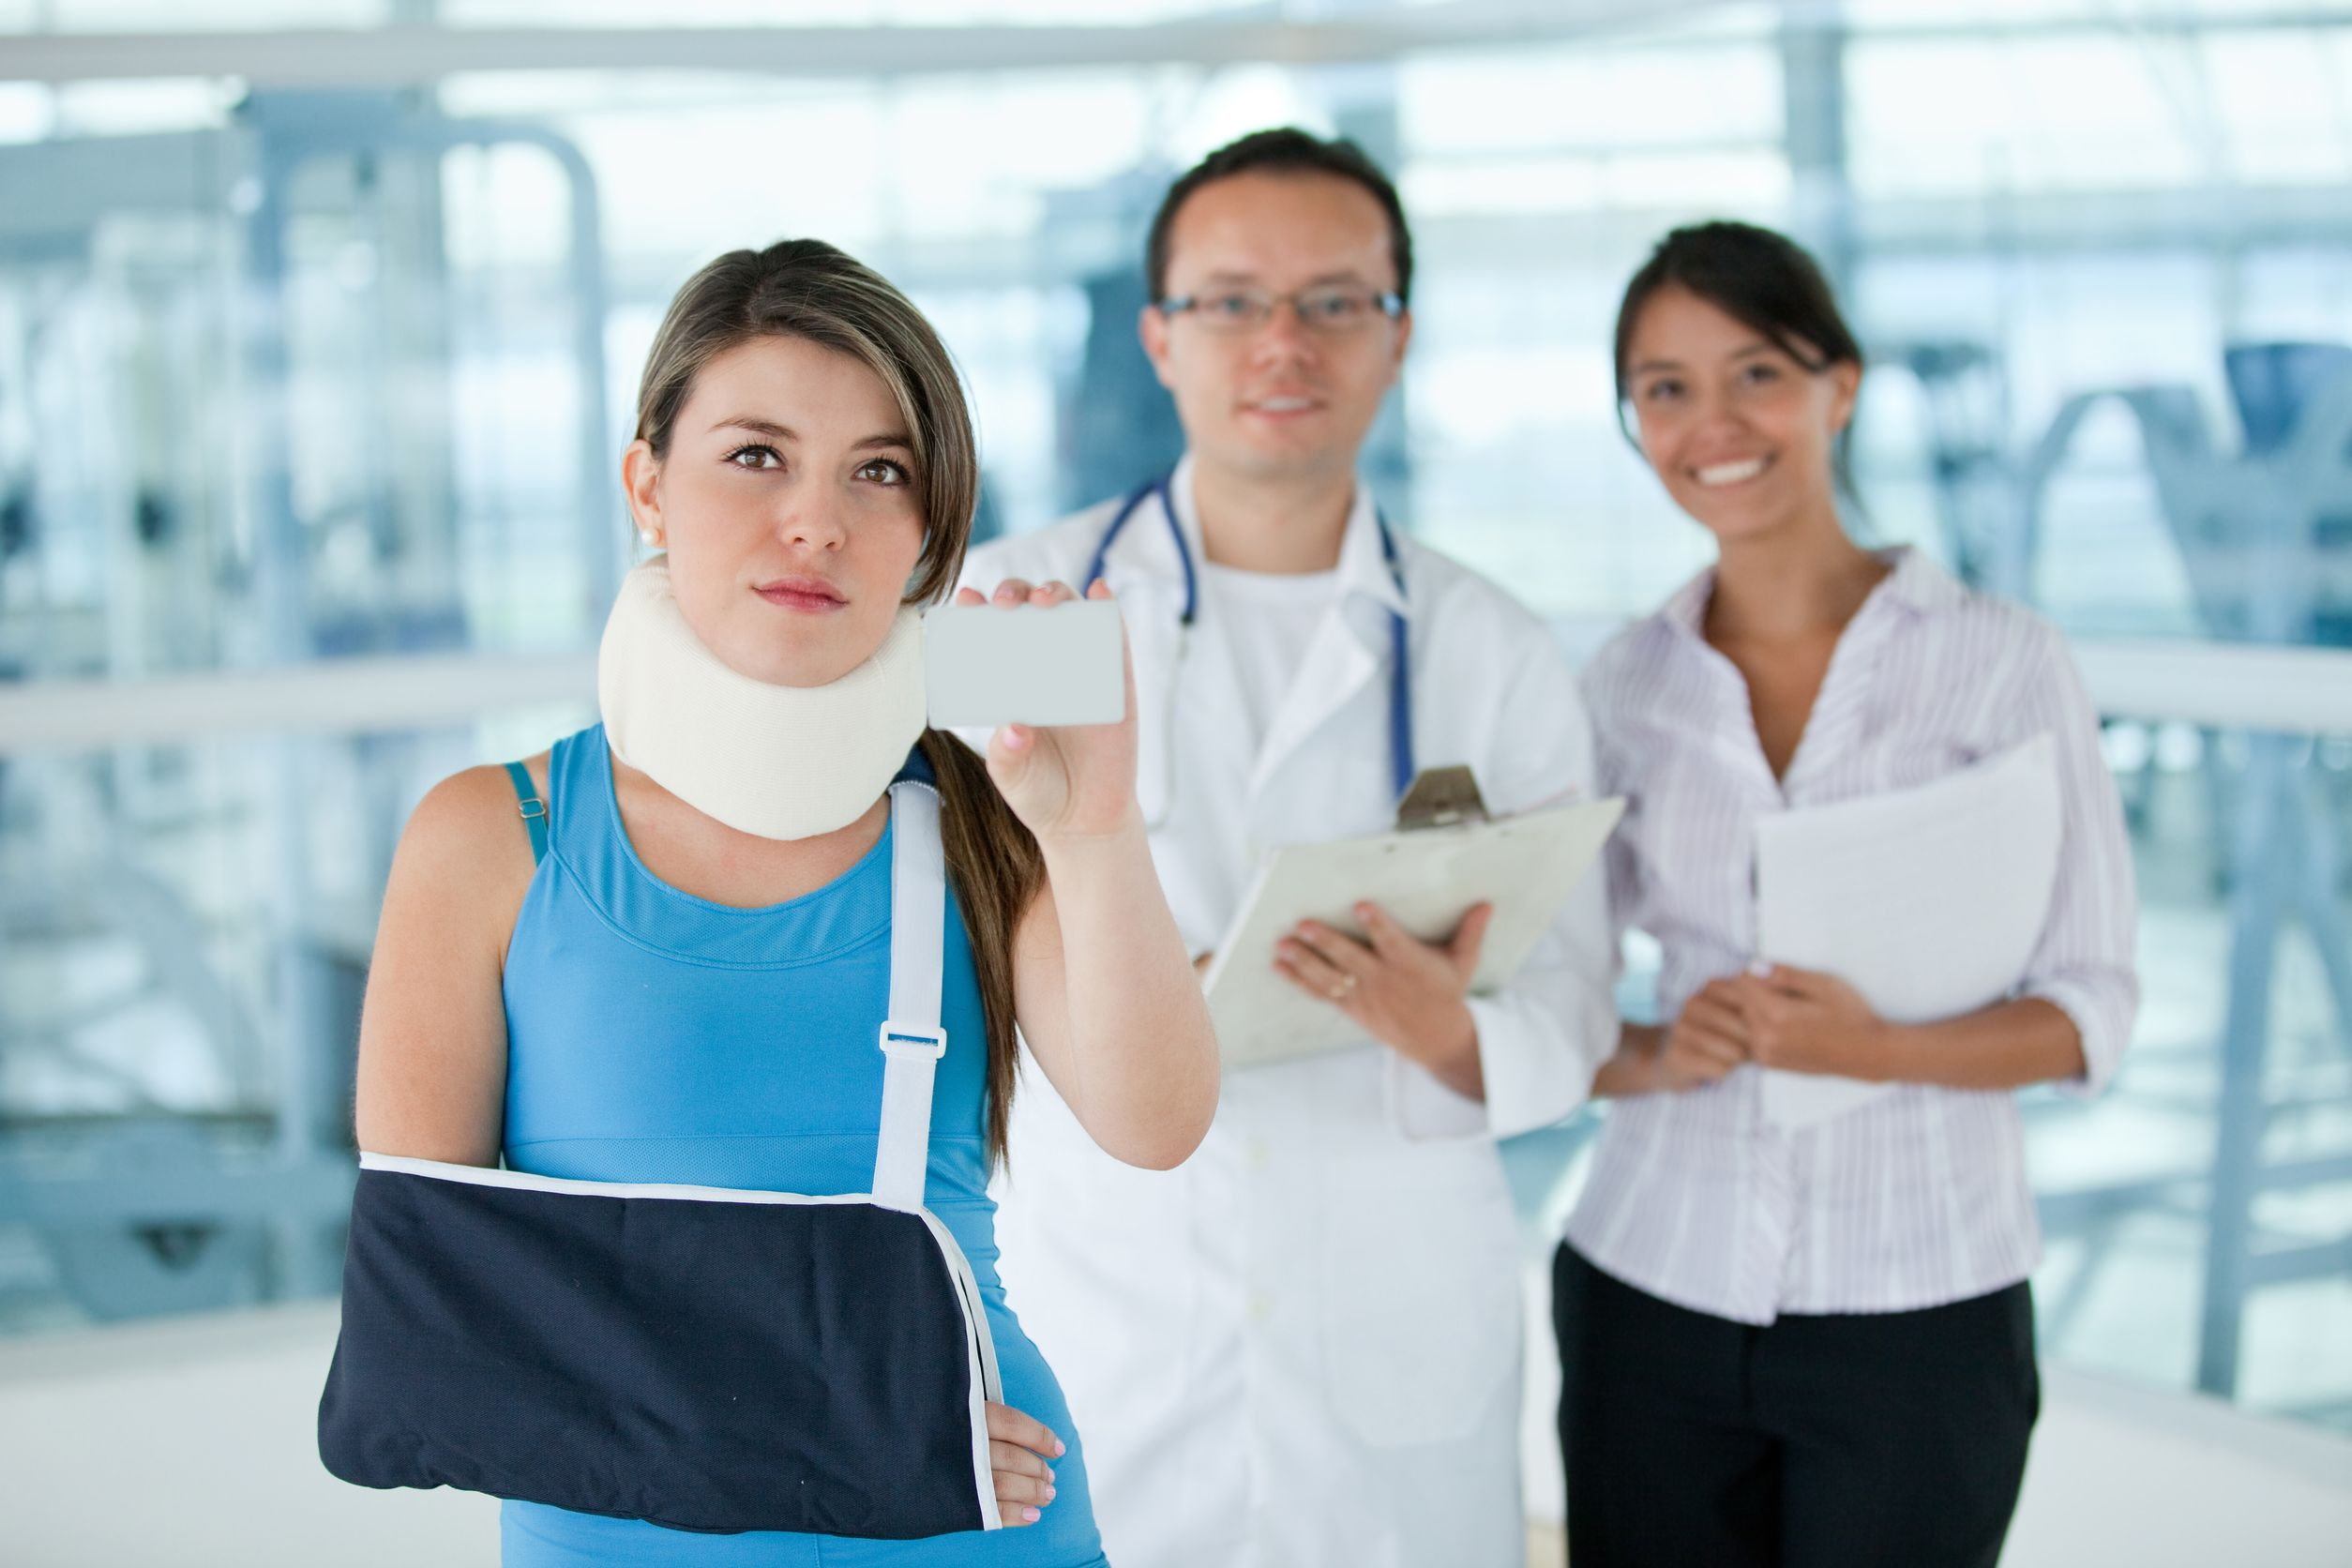 Planning Your Visit To An Orthopedic Surgeon